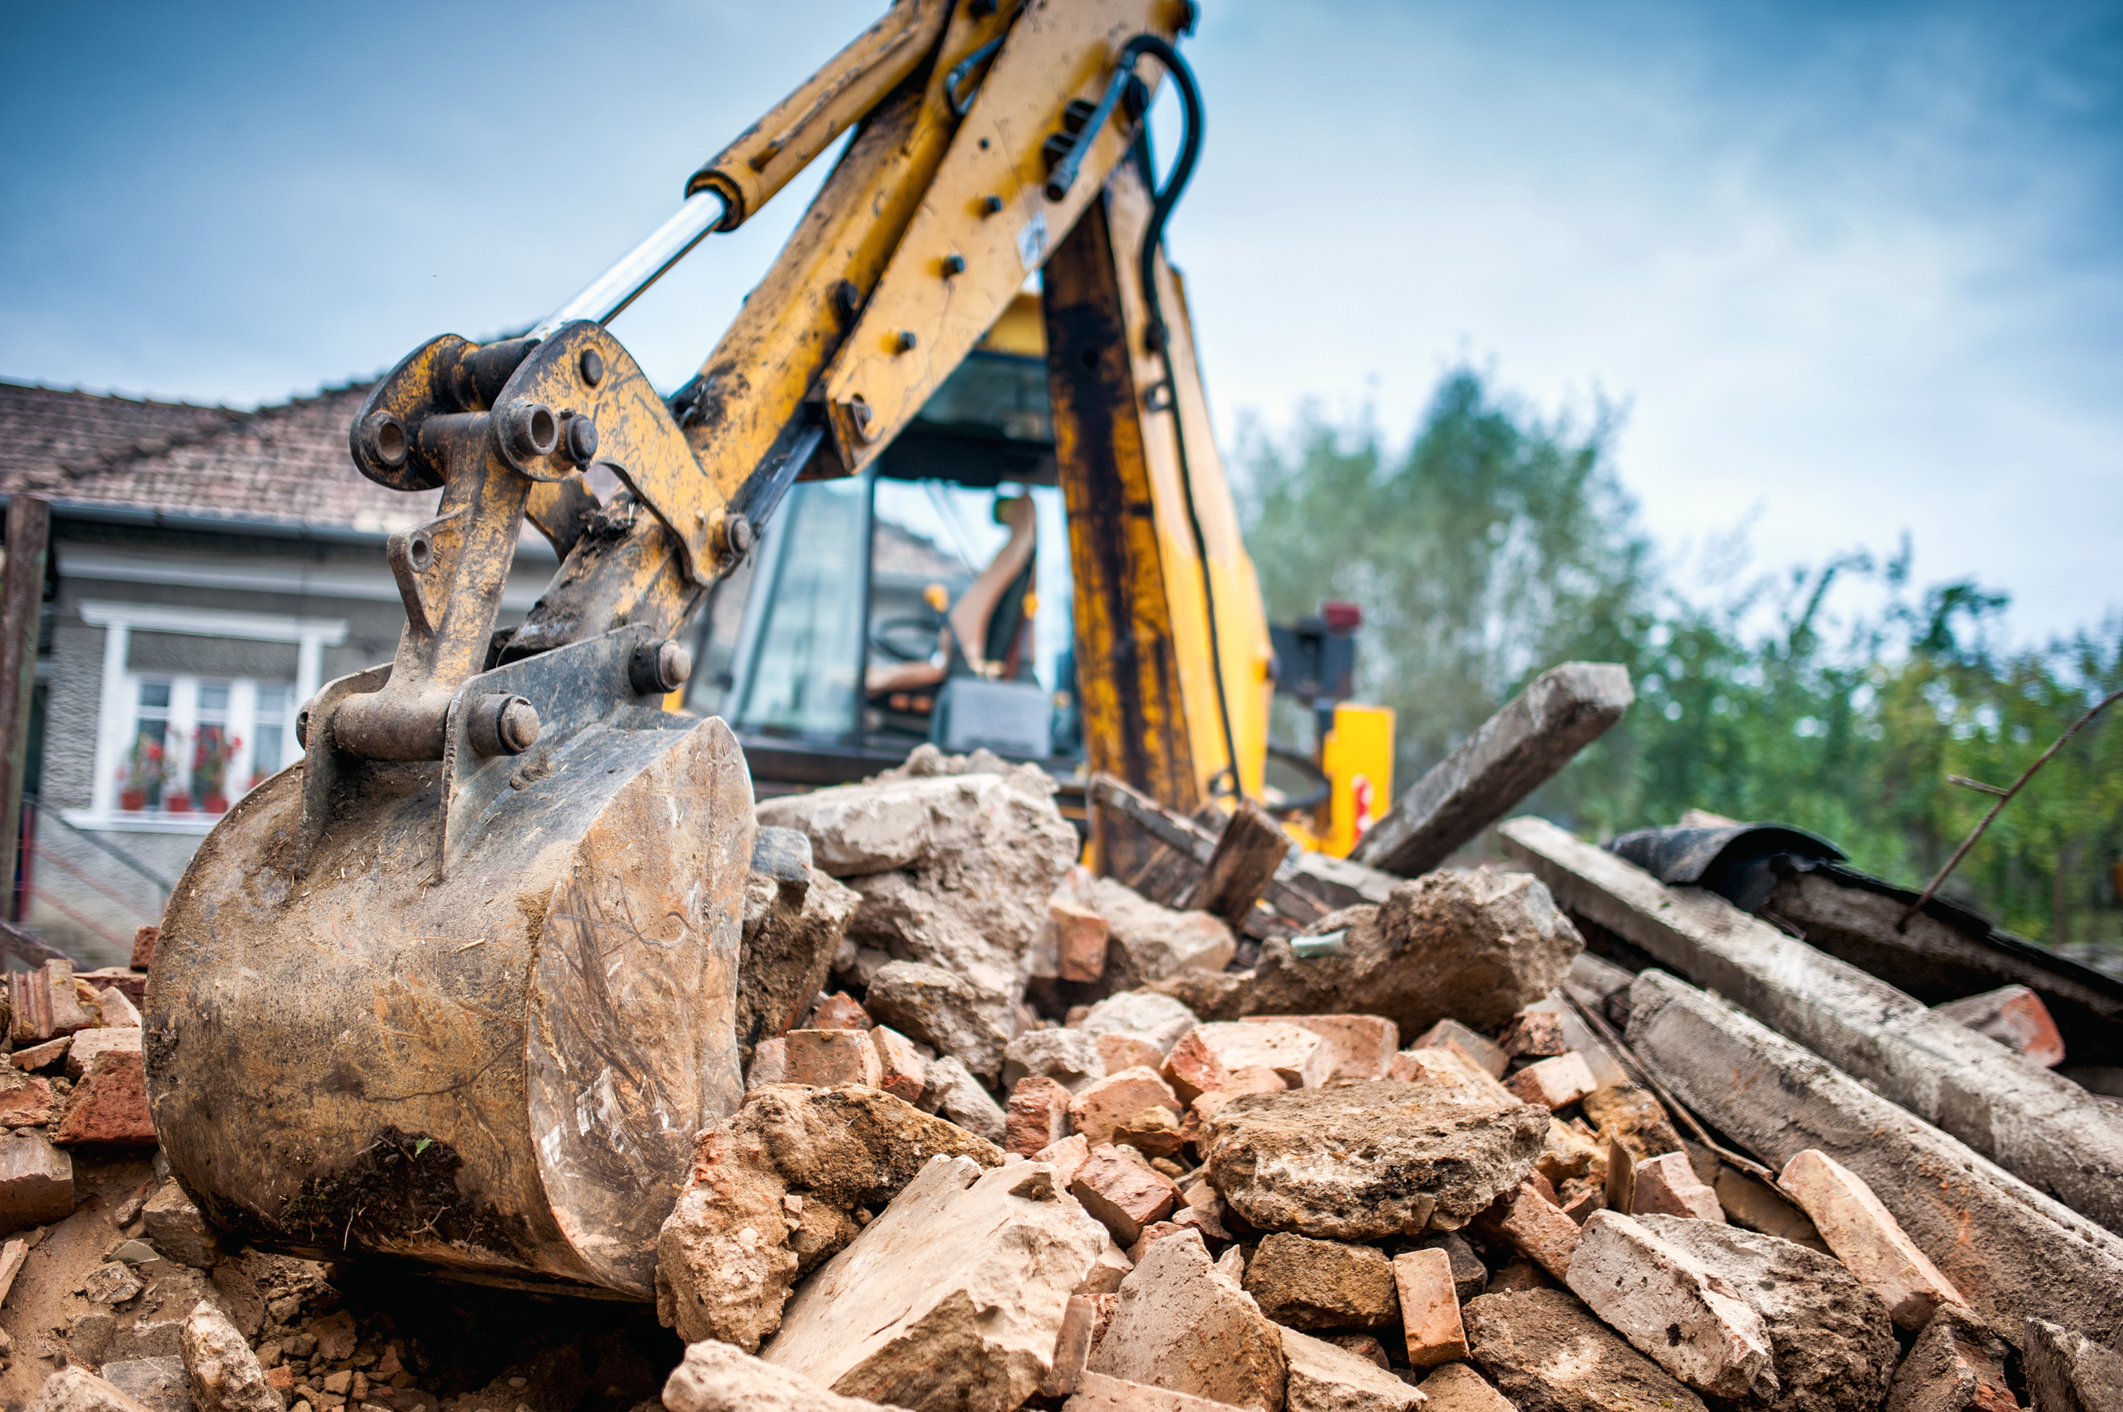 Plant Hire & Earthworks - Plant Hire & Earthworks - Mini digger with operator, operator hire CPCS/NVQL3 accredited on hourly or day rate, excavators & attachments, pond clearing/desilting & reed cutting, demolition & site clearance.